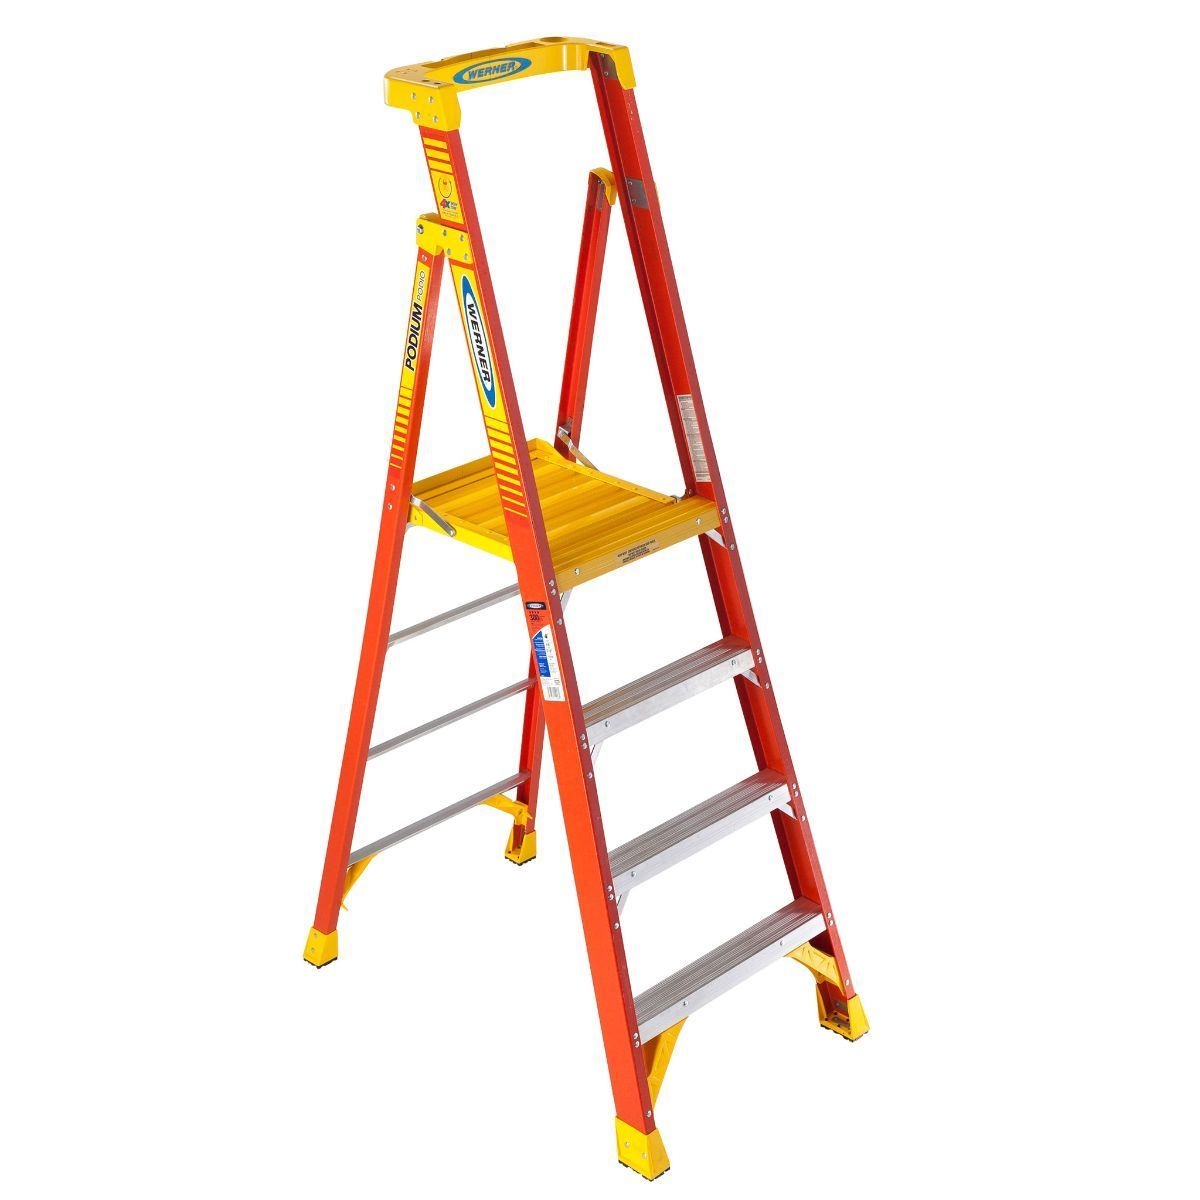 The Podium Ladder From Werner Takes Safety To New Heights Ladder Step Ladders Fiberglass